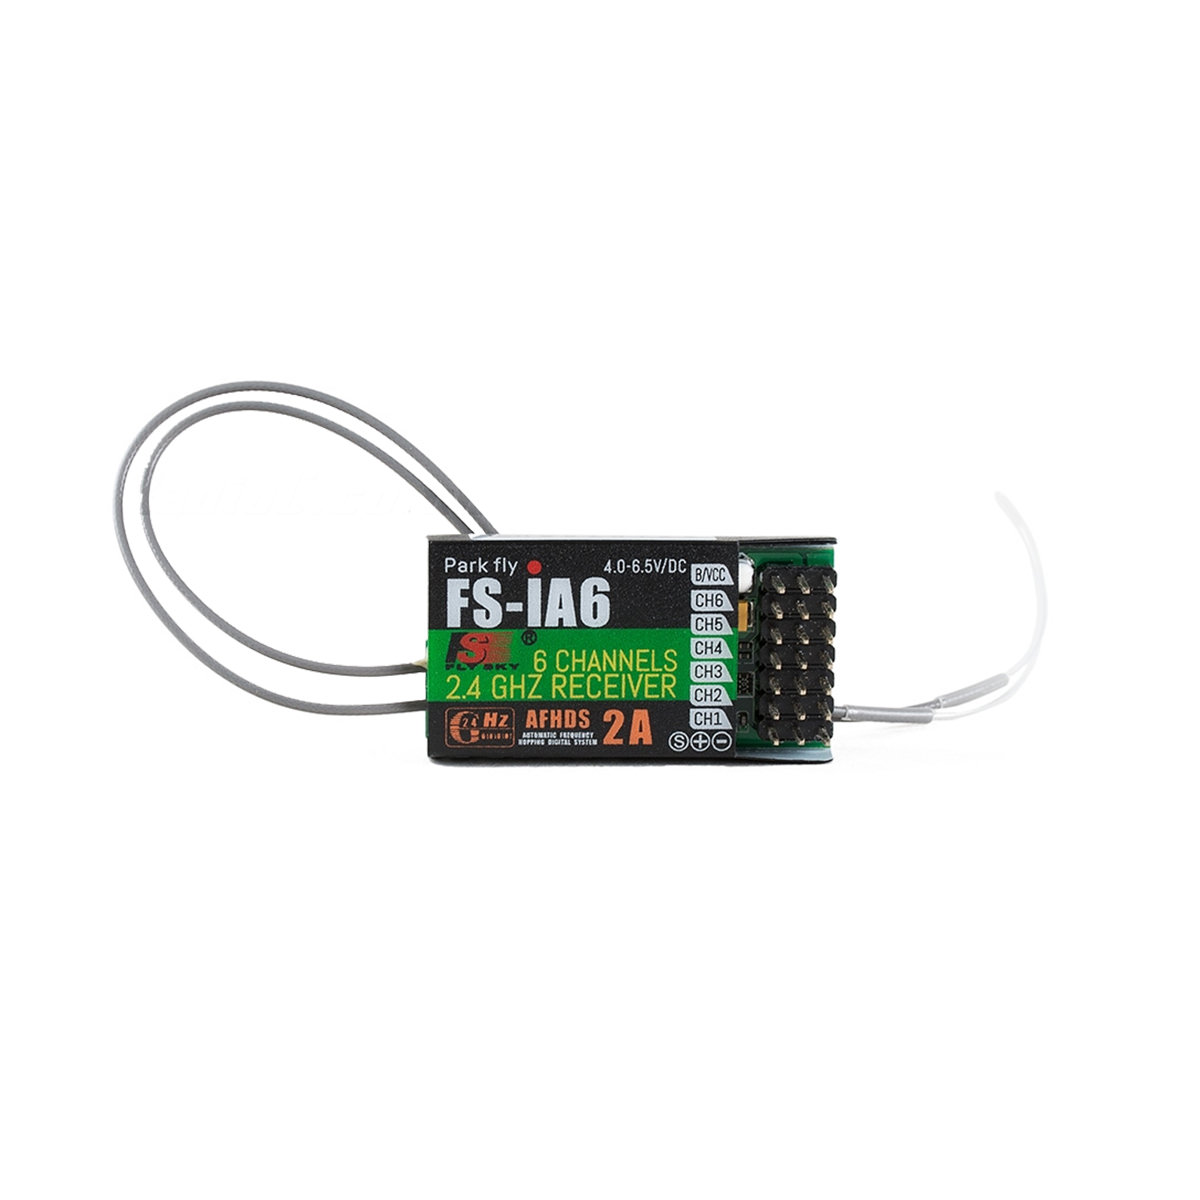 Flysky FS-iA6 6 Ch 2.4Ghz Receiver at Hobby Warehouse